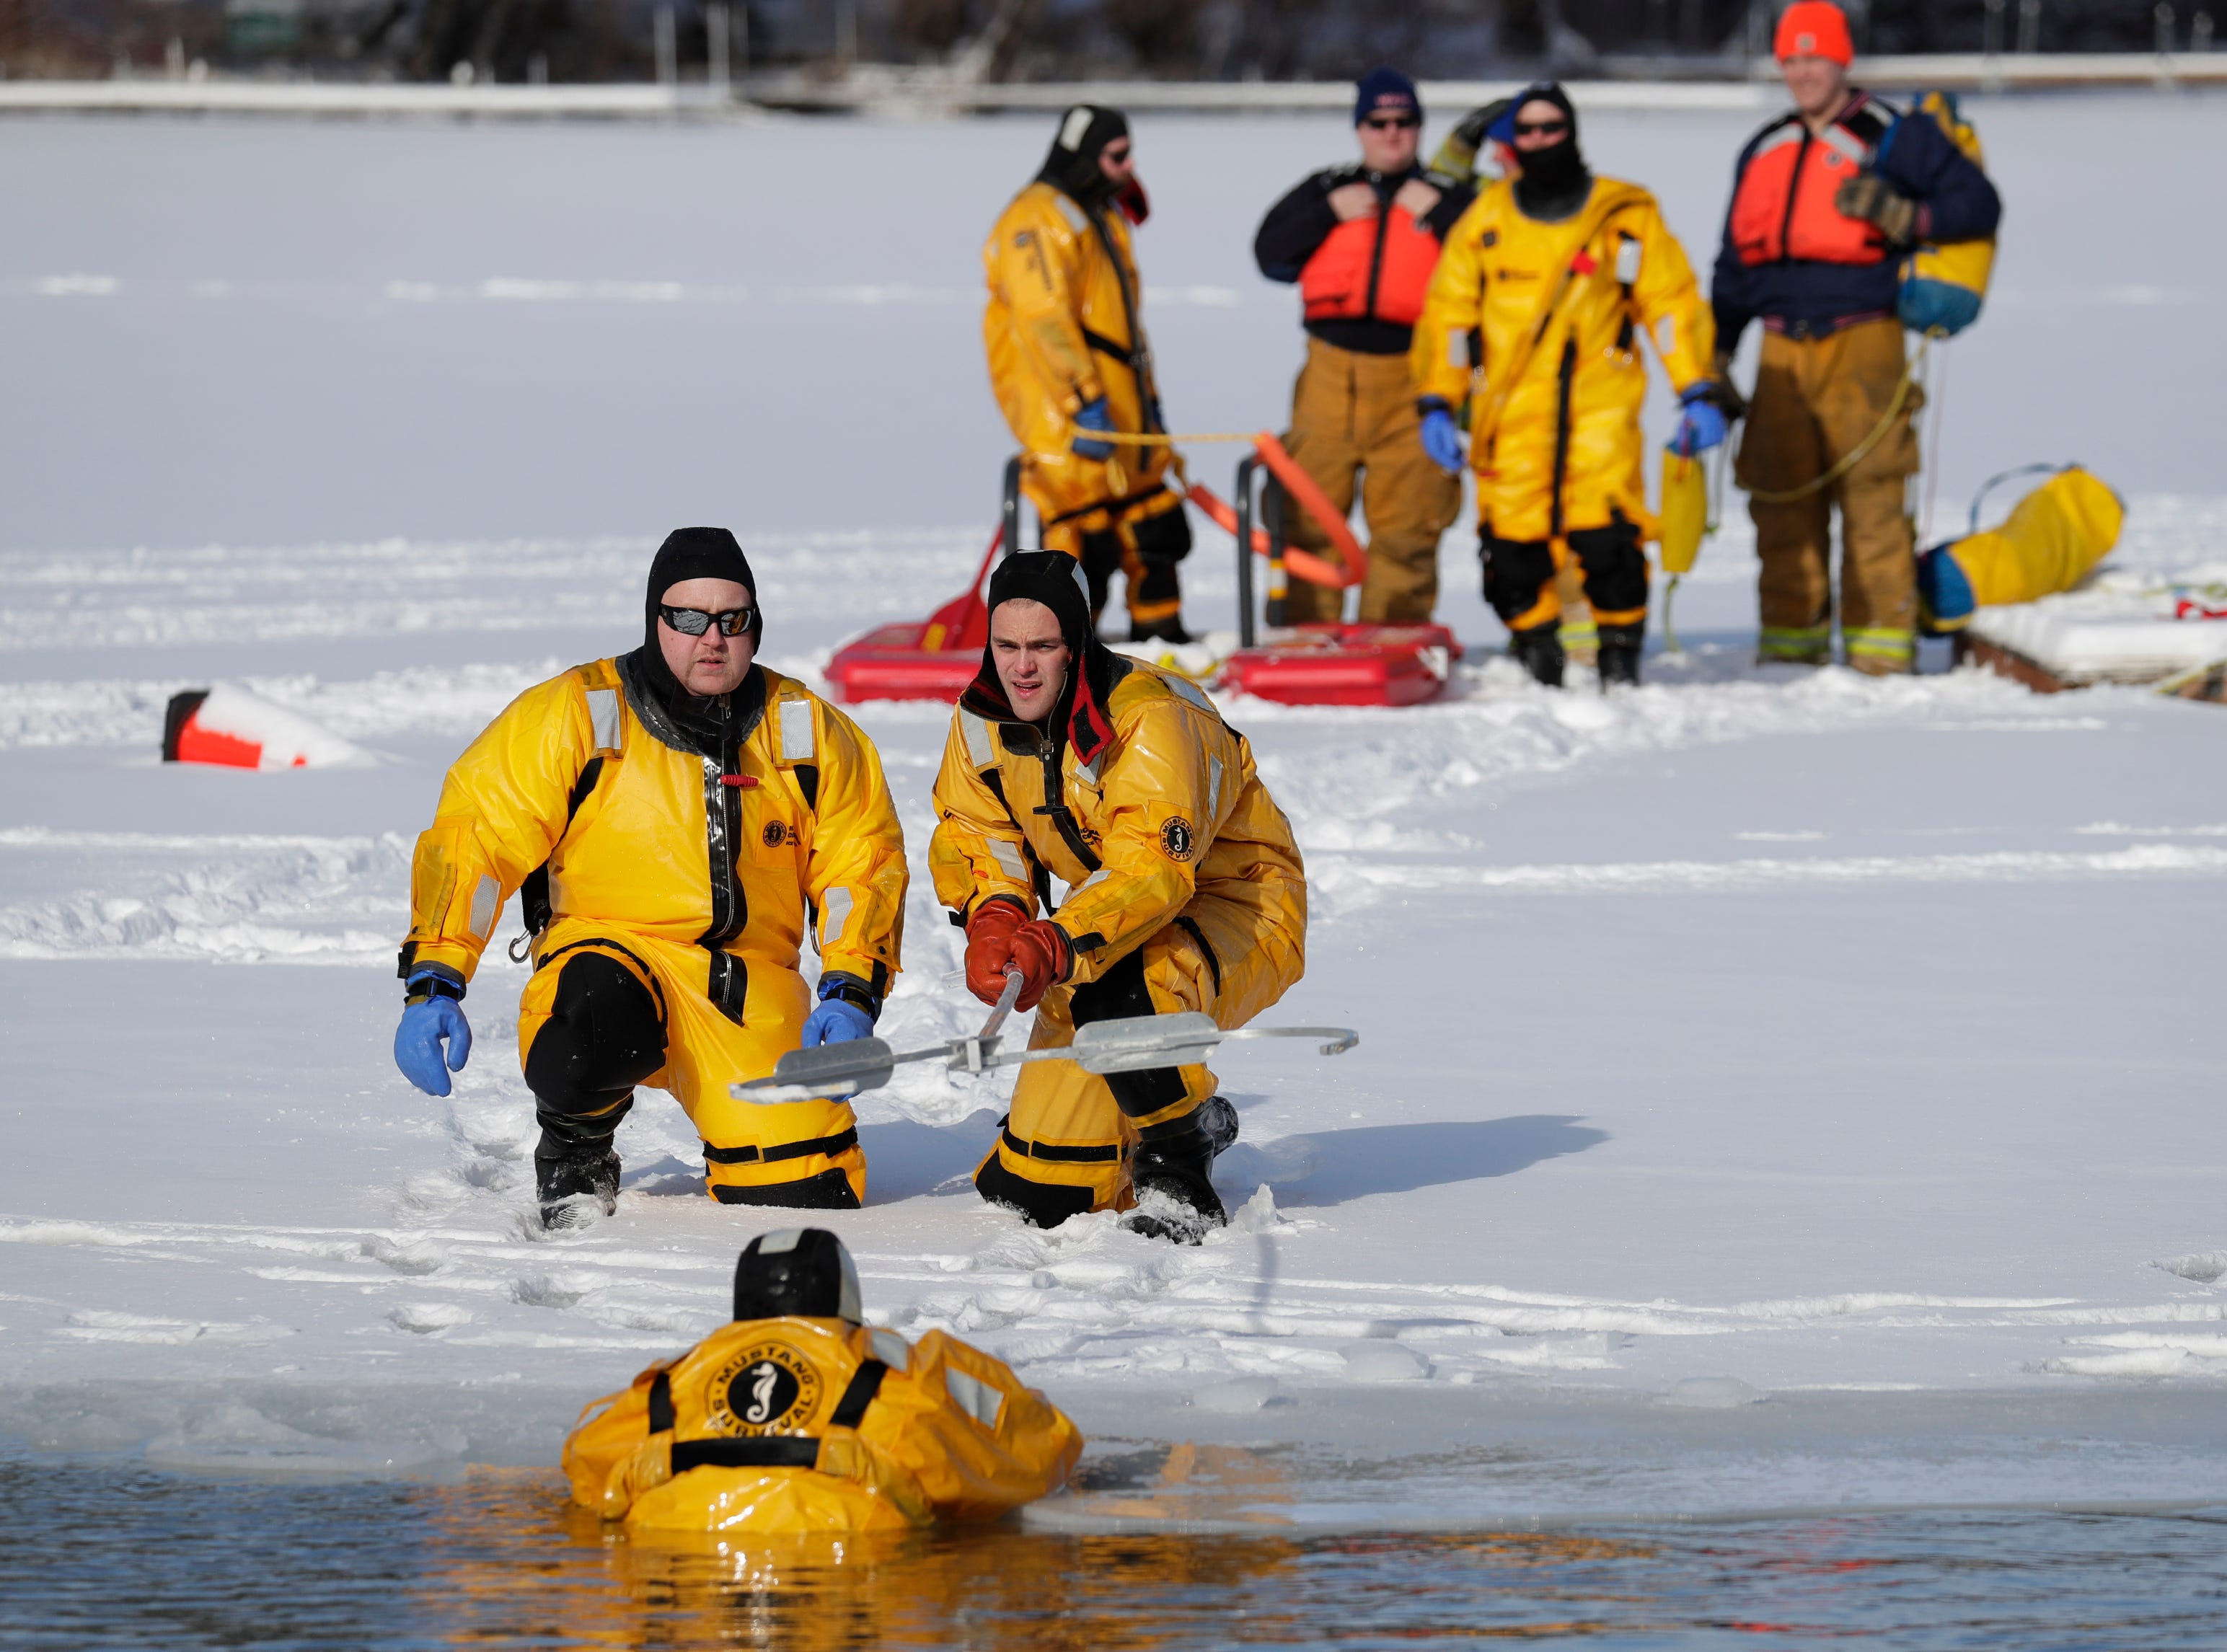 Waupaca firefighters conduct a water rescue demonstration during the Polar Bear Plunge Tuesday, January 1, 2019, at Becker Marine on Lime Kiln Lake in Waupaca, Wis. 